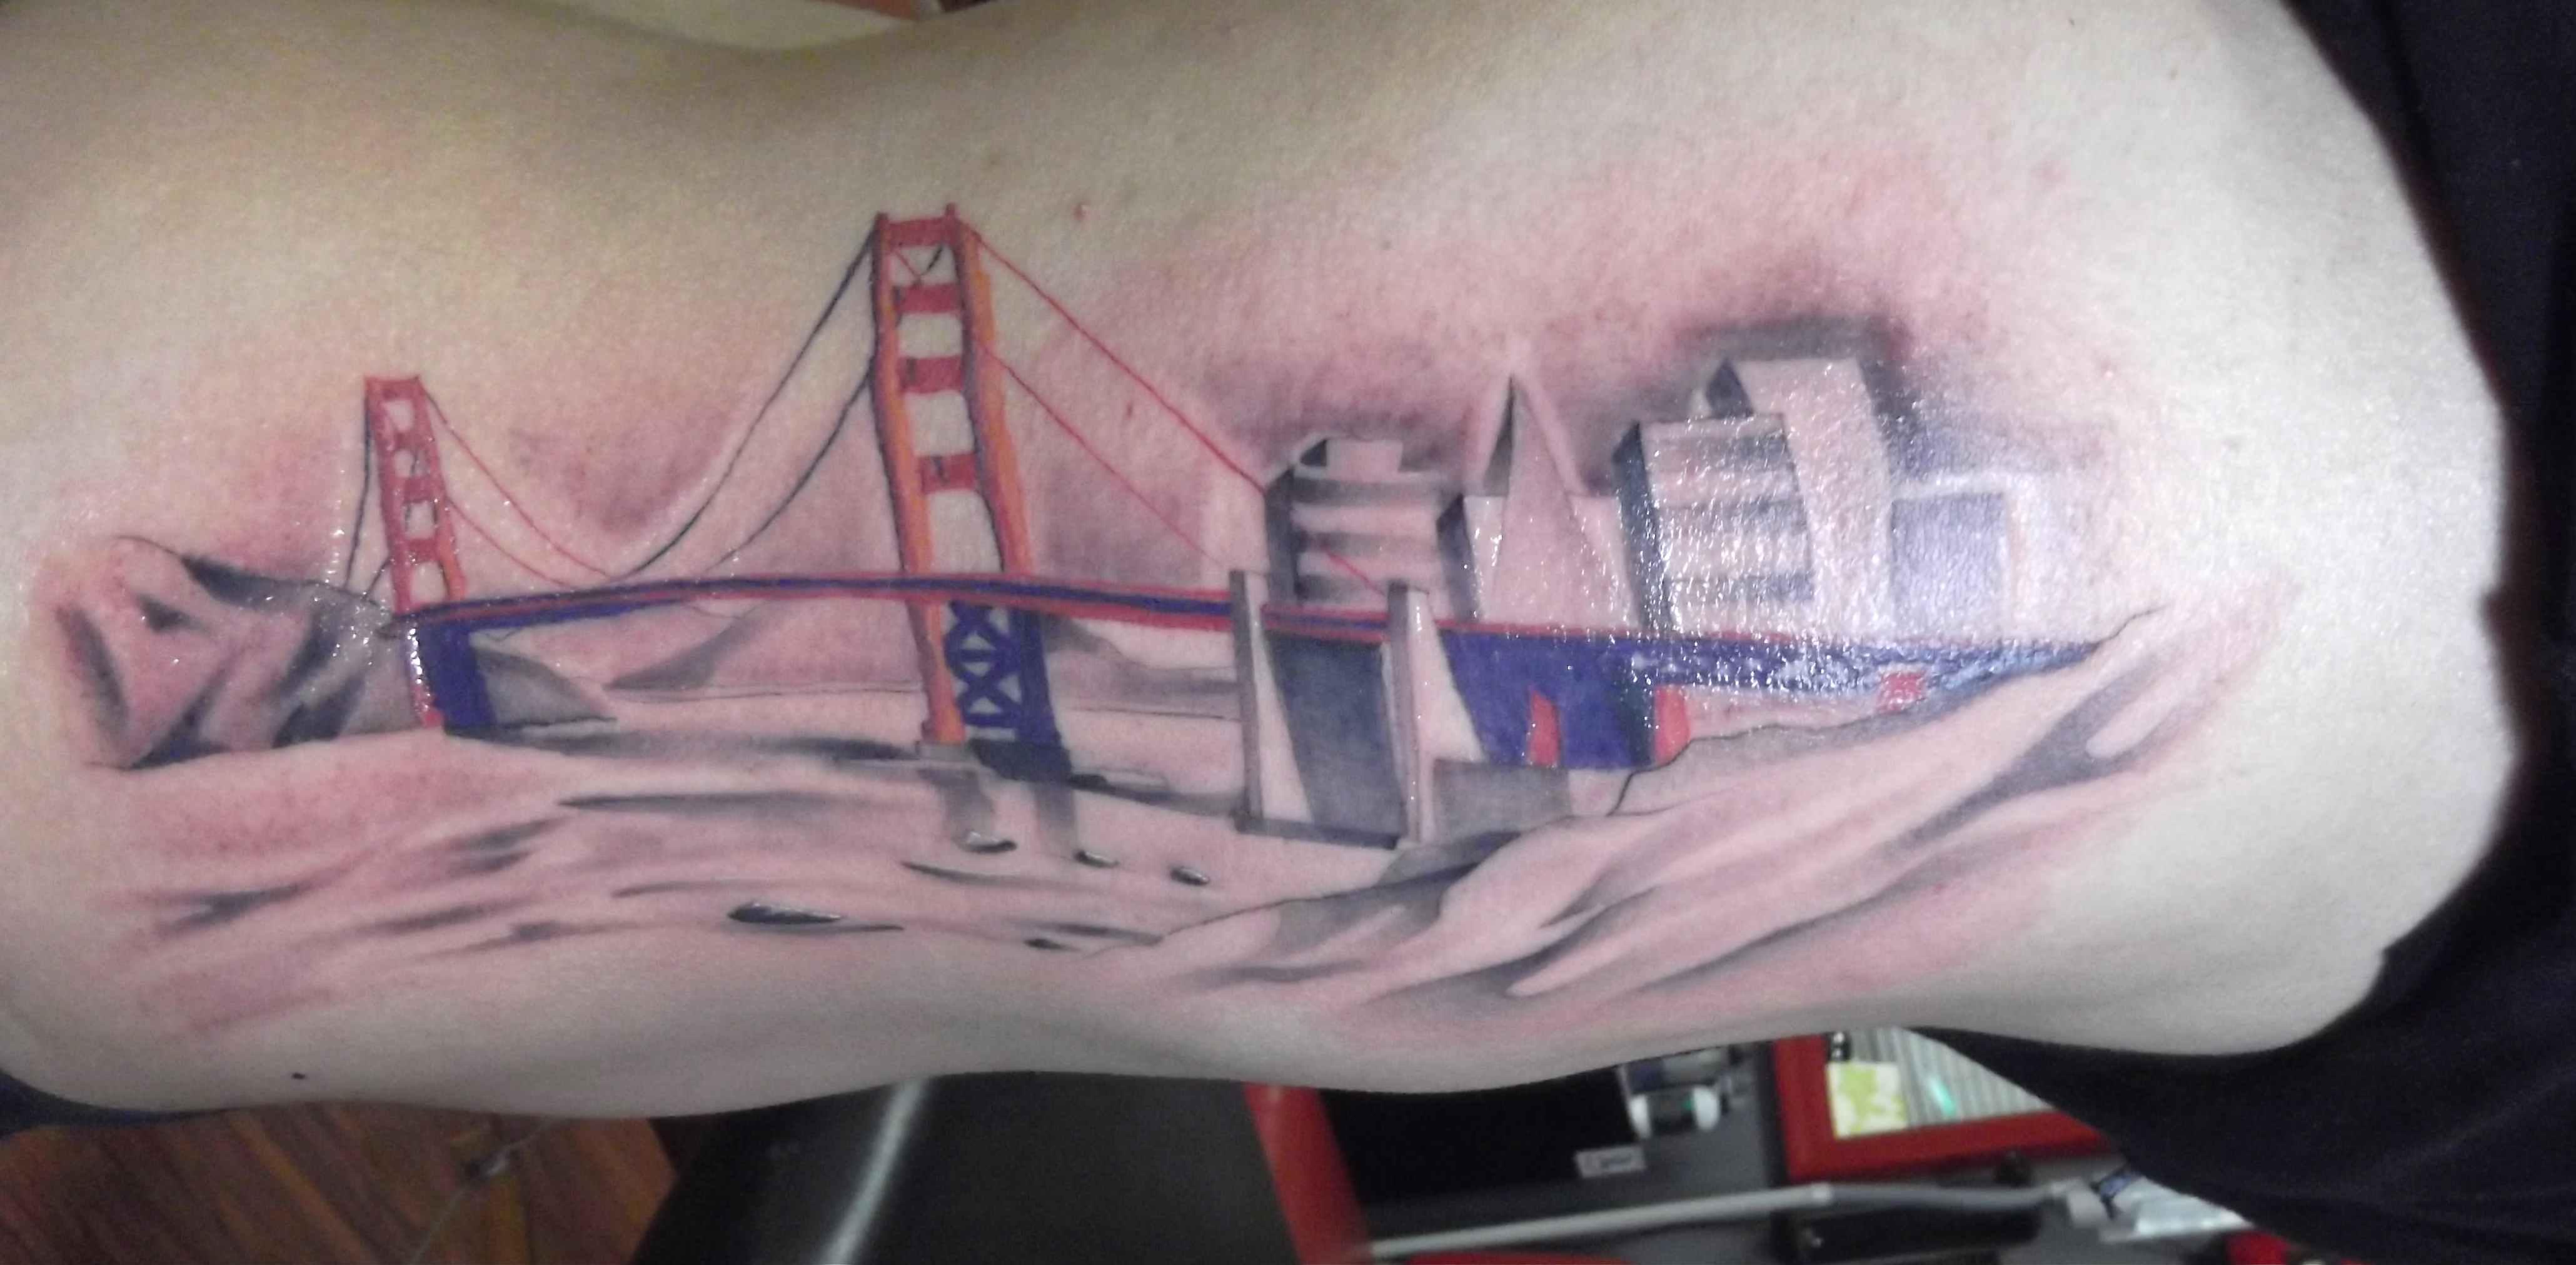 San francisco ca bryangvargas for Bay area tattoo